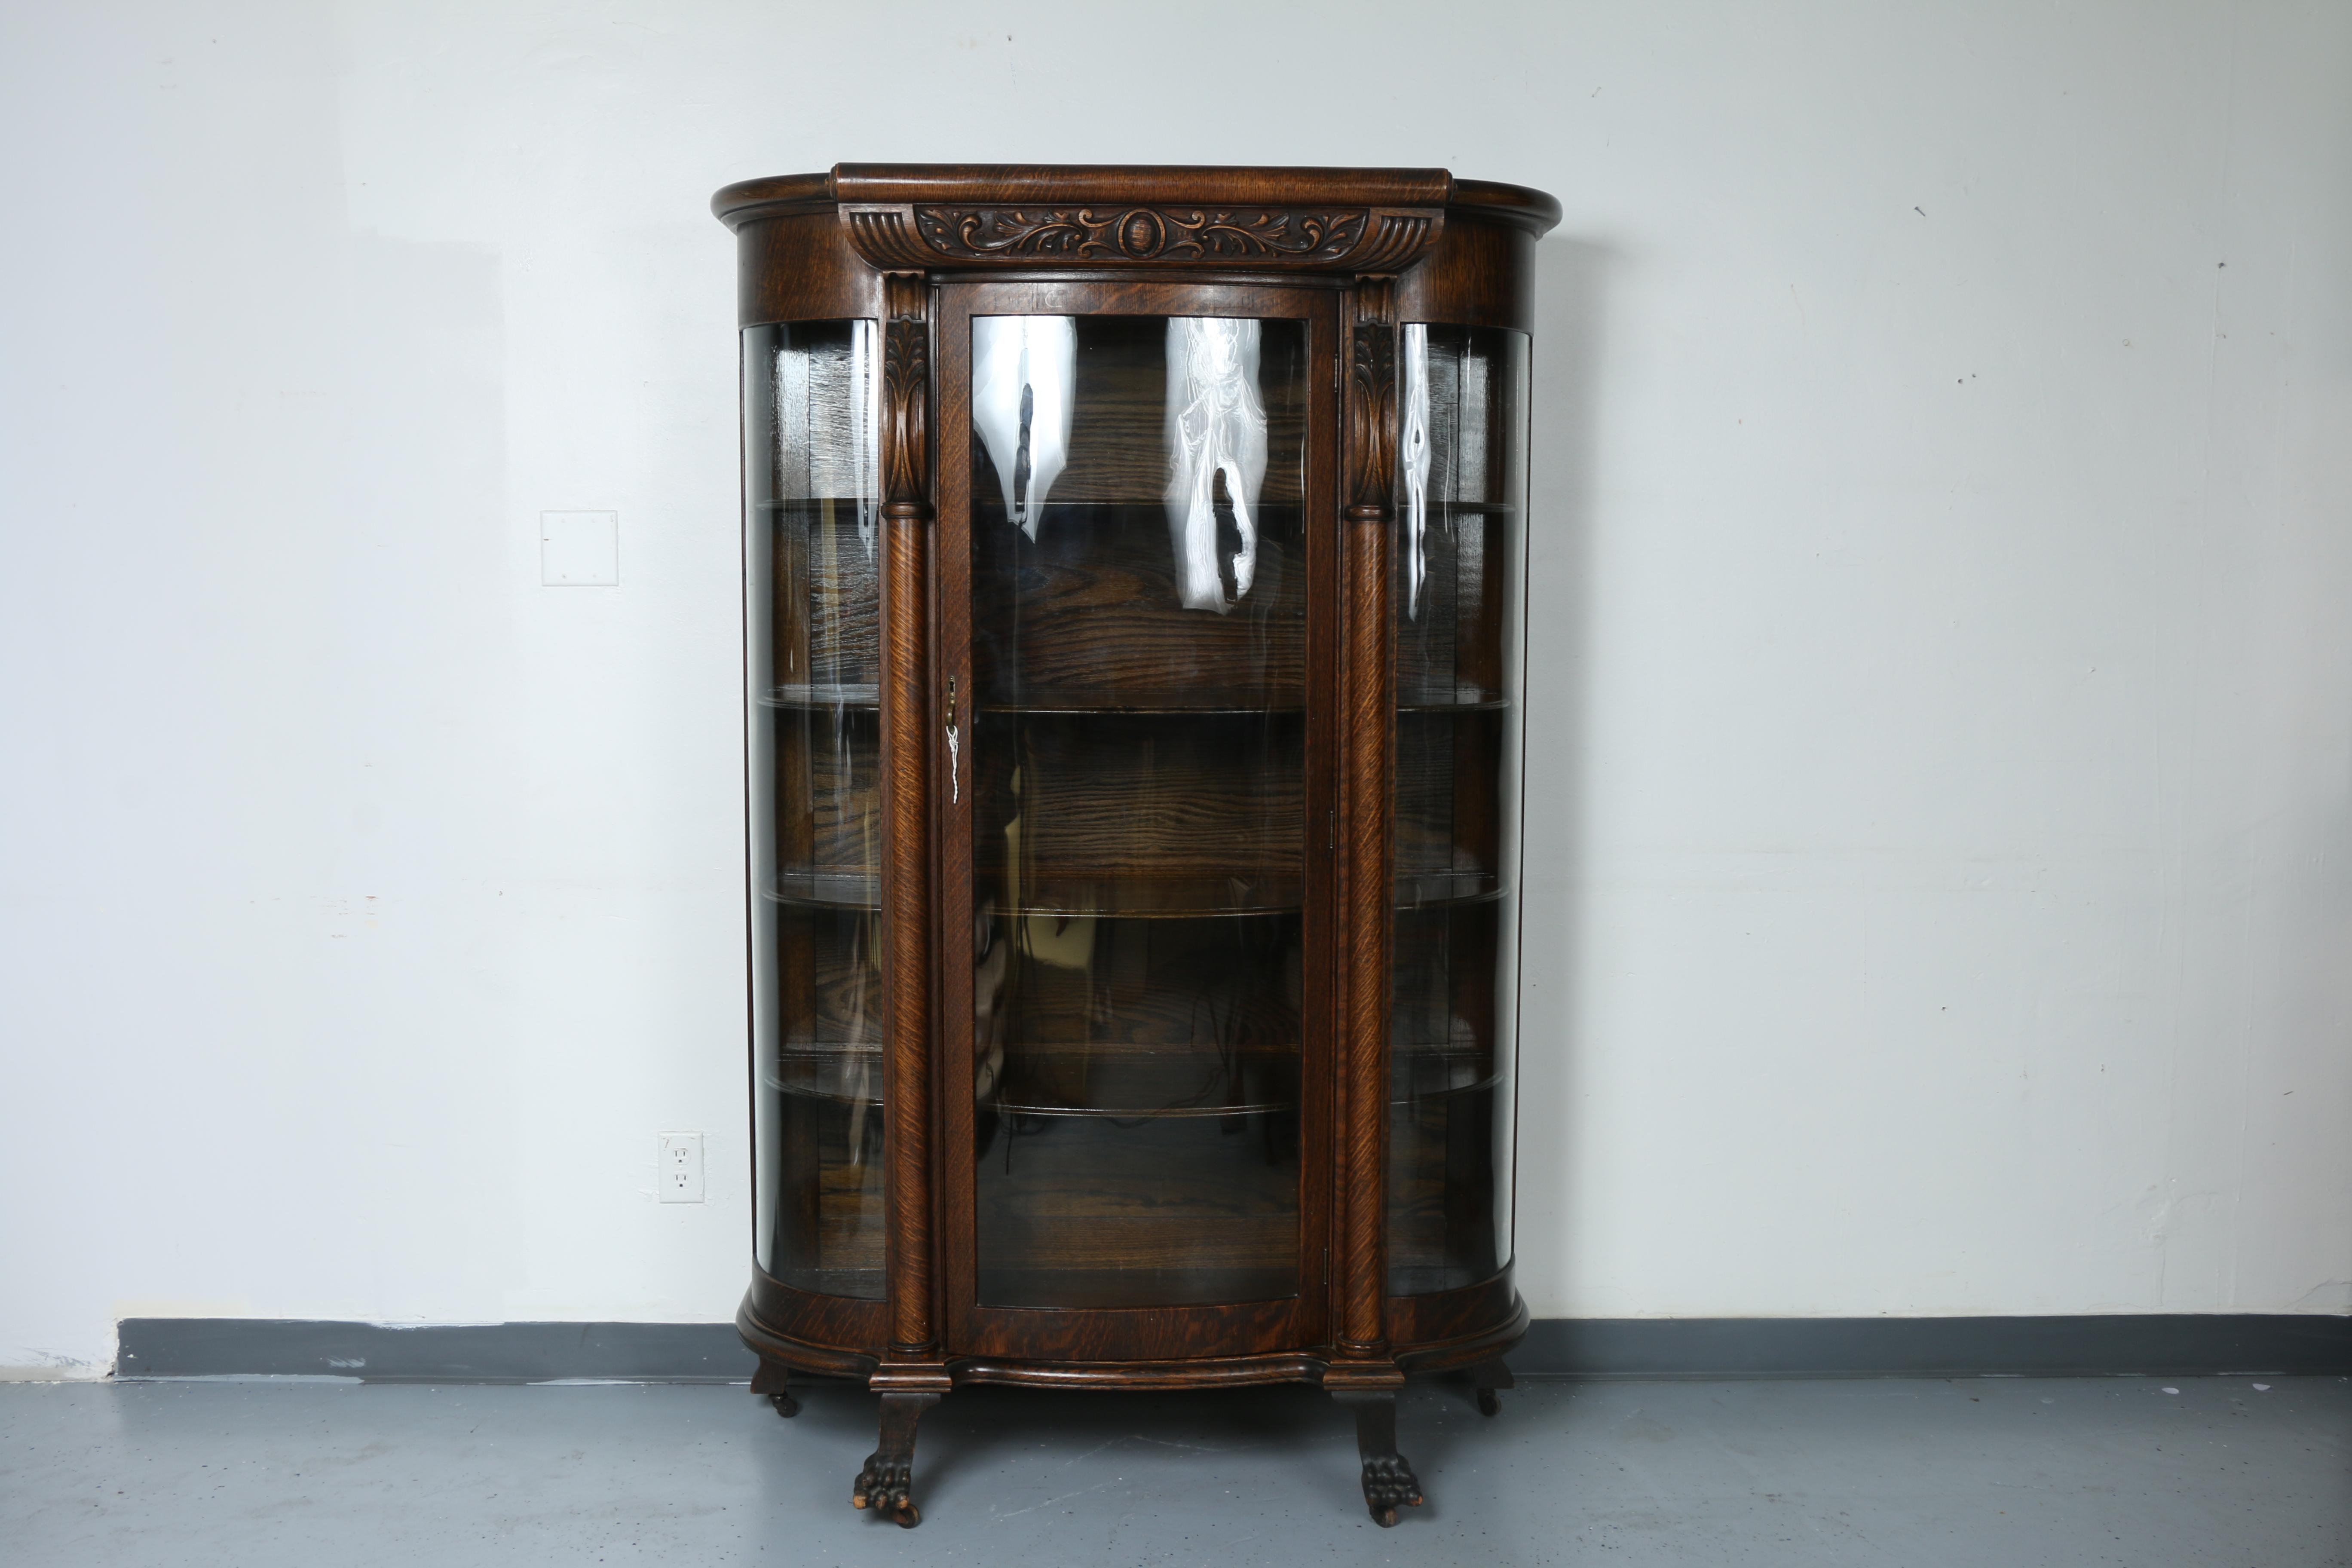 Charmant Vintage Condition Curio Cabinet In Good Working Condition. Has Shelves  Inside And Glass Is Not